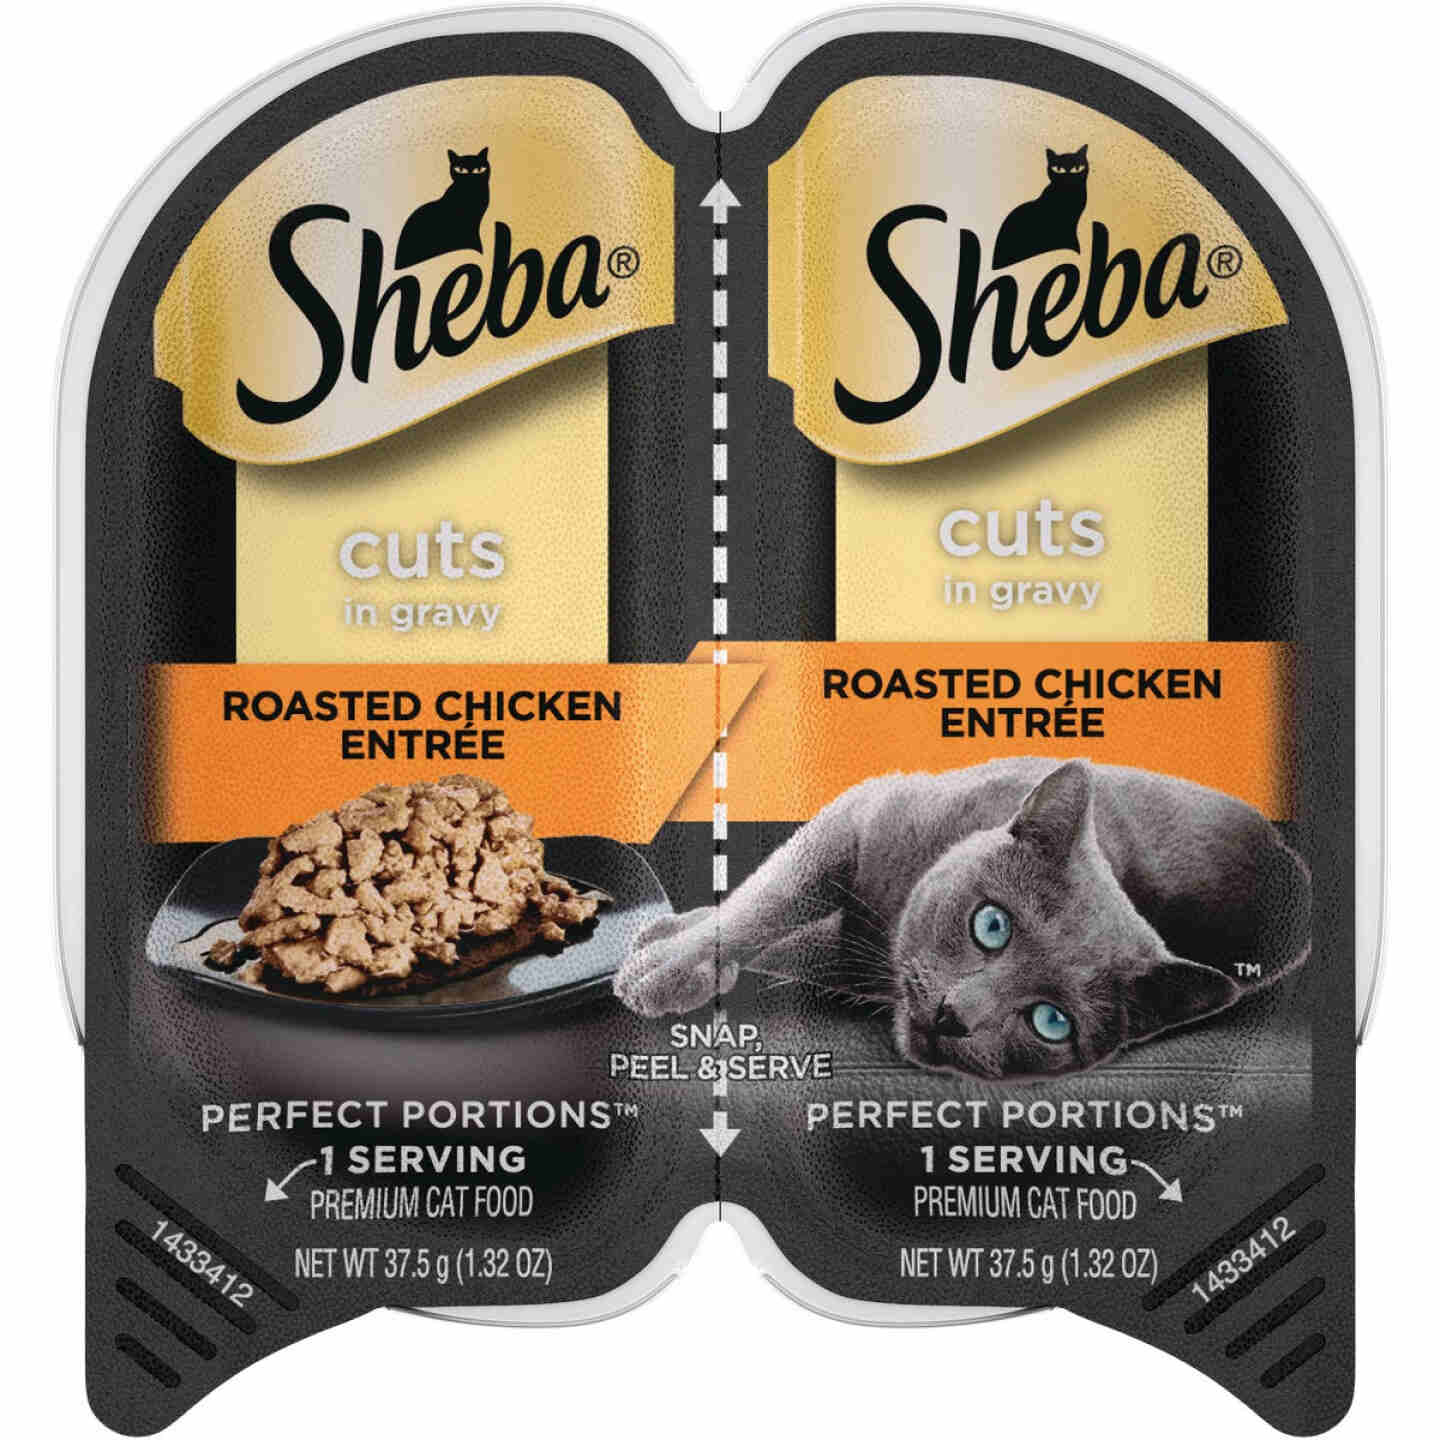 Sheba Perfect Portions Cuts in Gravy 2.6 Oz. Roasted Chicken Adult Wet Cat Food Image 1